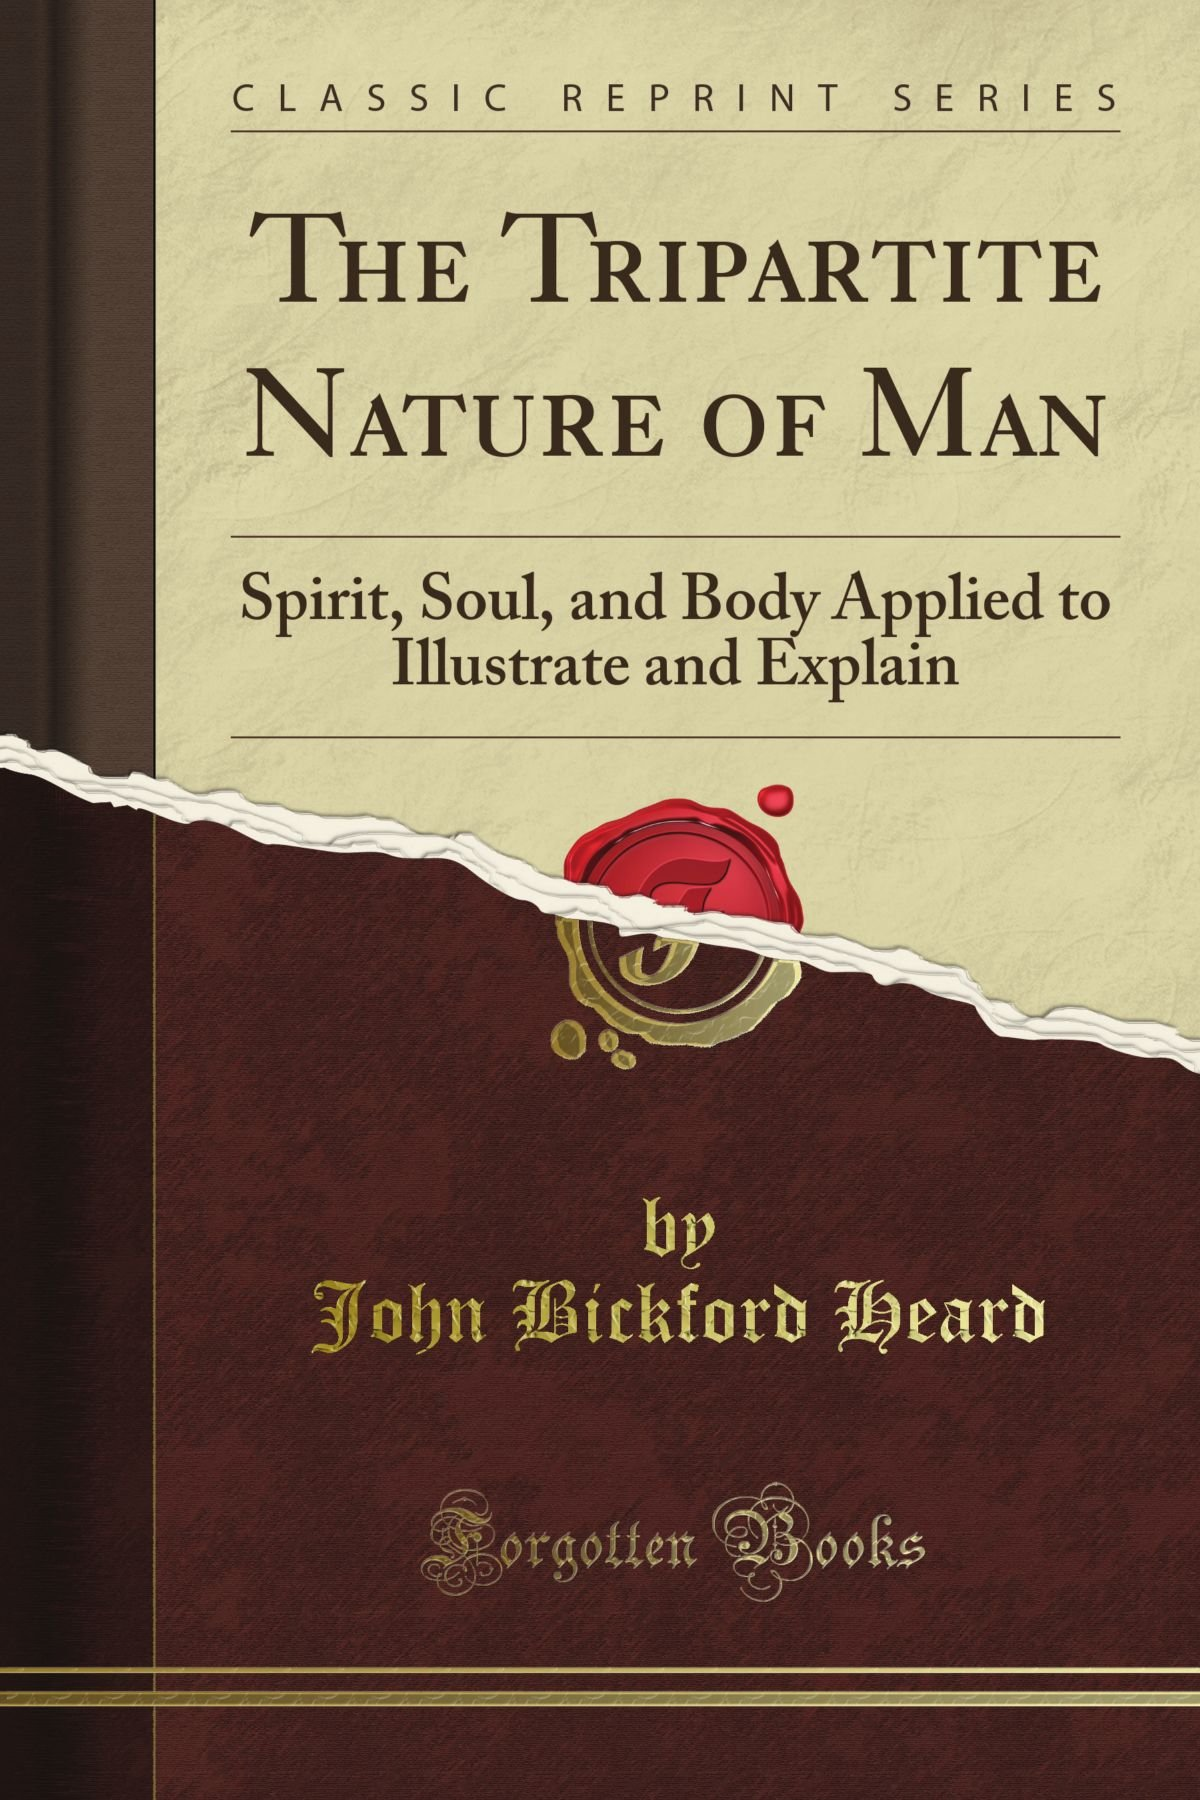 The Tripartite Nature of Man: Spirit, Soul, and Body Applied to Illustrate and Explain (Classic Reprint) PDF